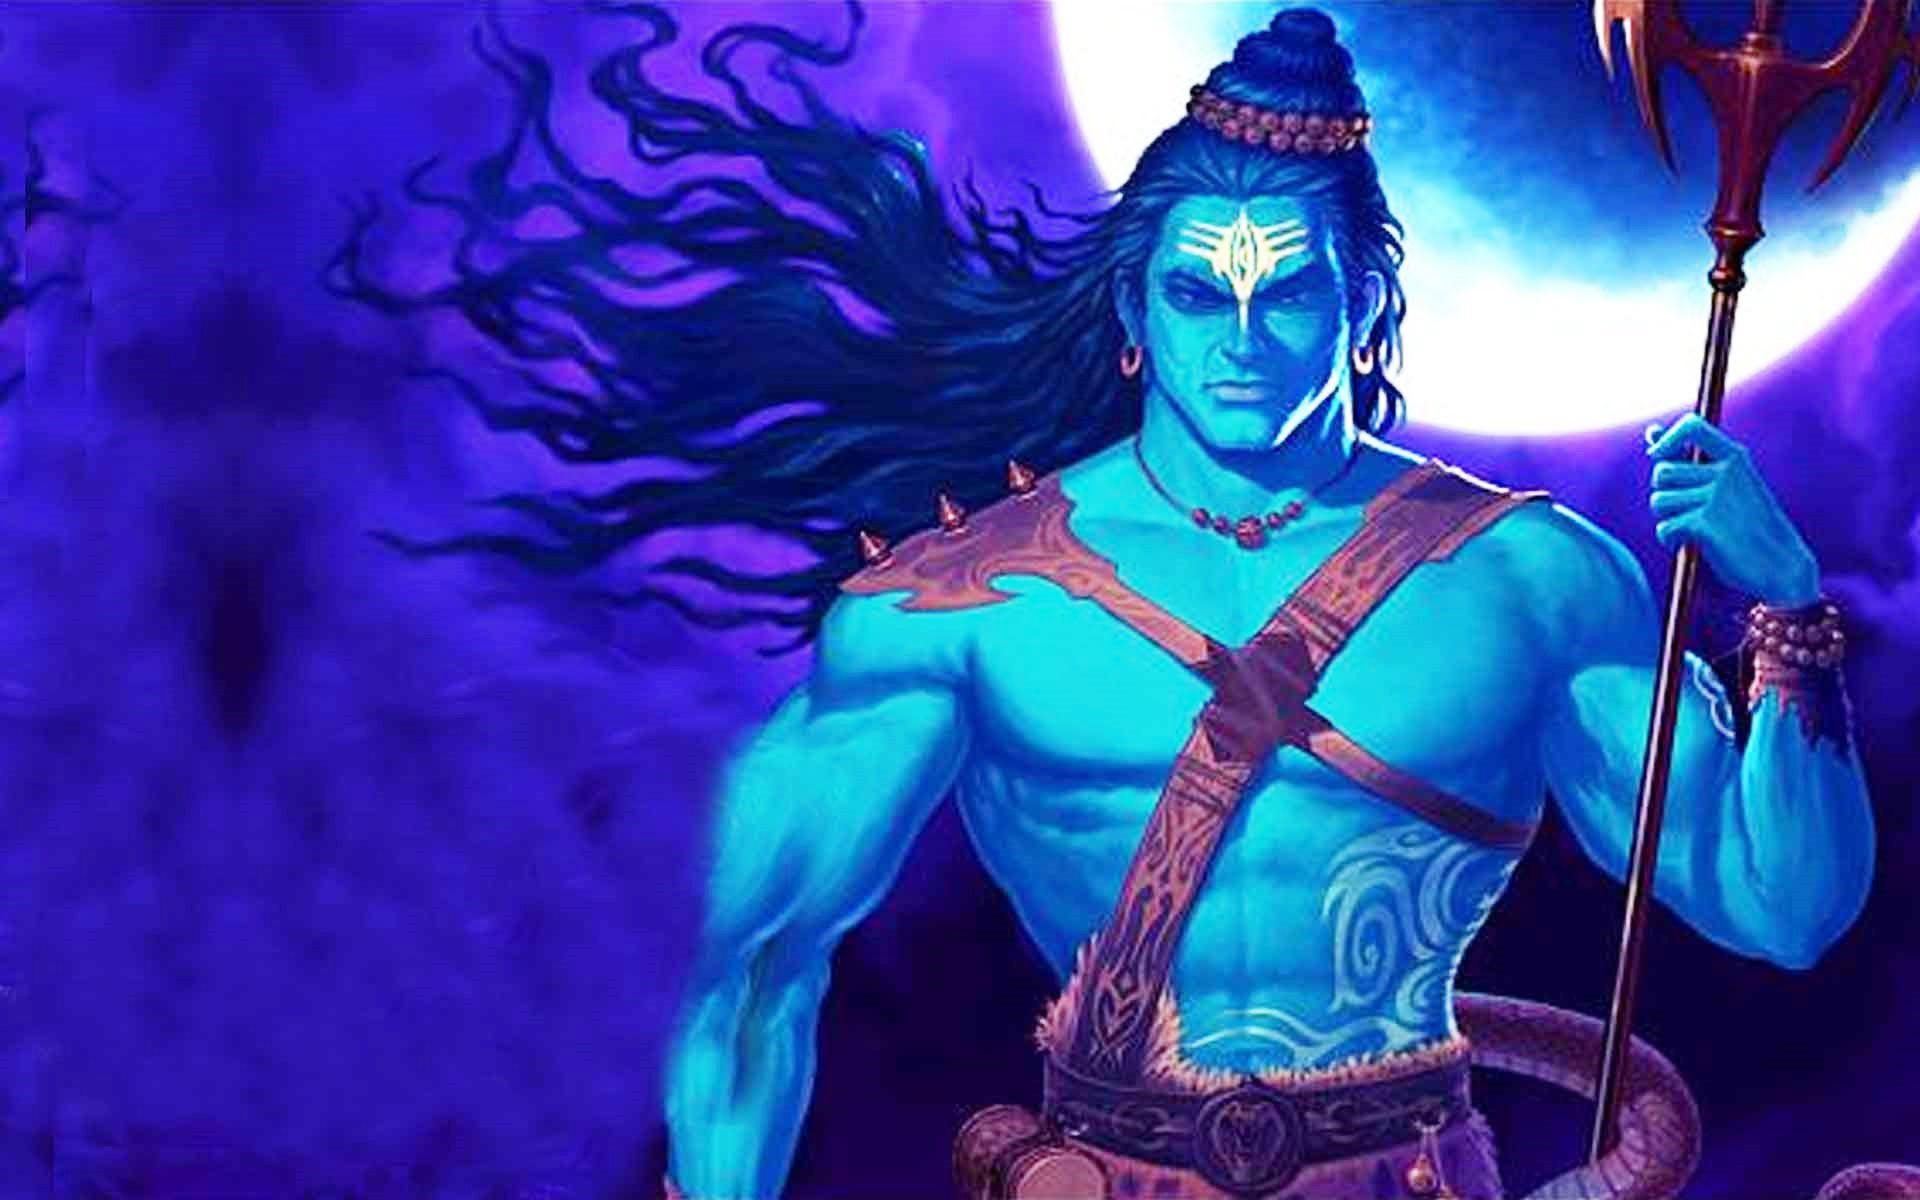 Lord-Shiva-animated-full-hd-image-33168058-compressor ⋆ OneHimachal